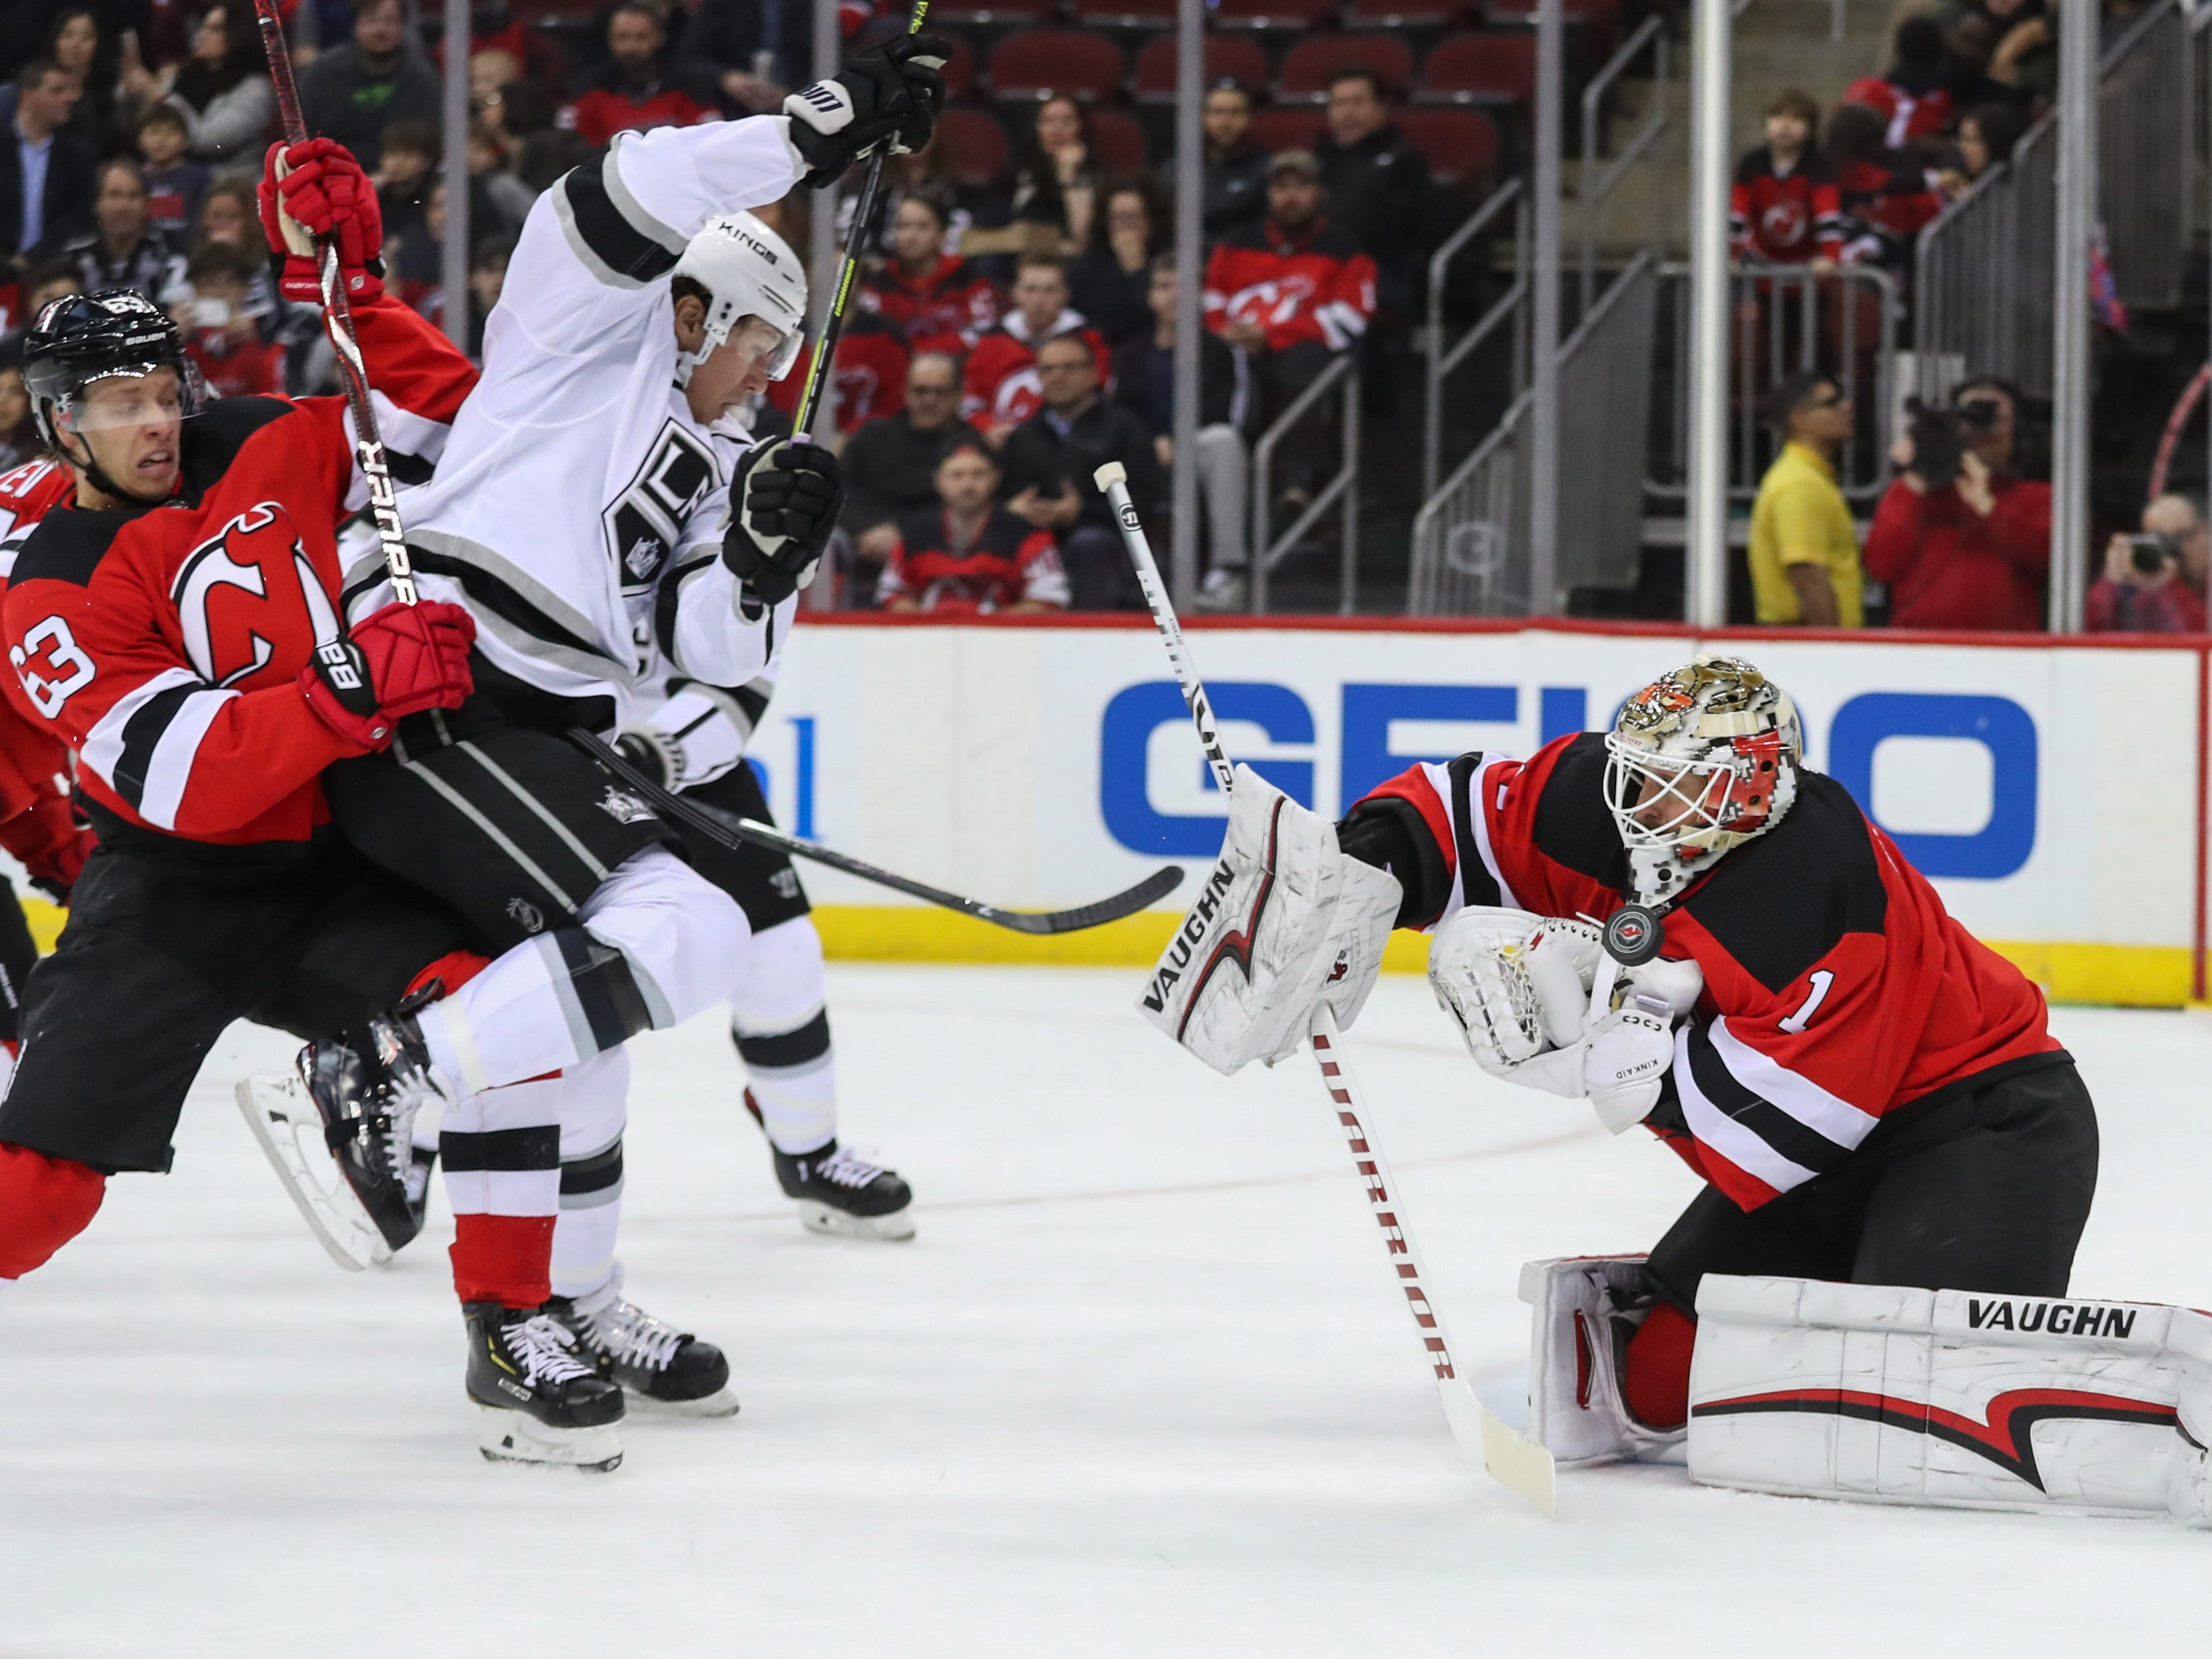 Feb 5, 2019; Newark, NJ, USA; New Jersey Devils goaltender Keith Kinkaid (1) makes a save during the first period against the Los Angeles Kings at Prudential Center.